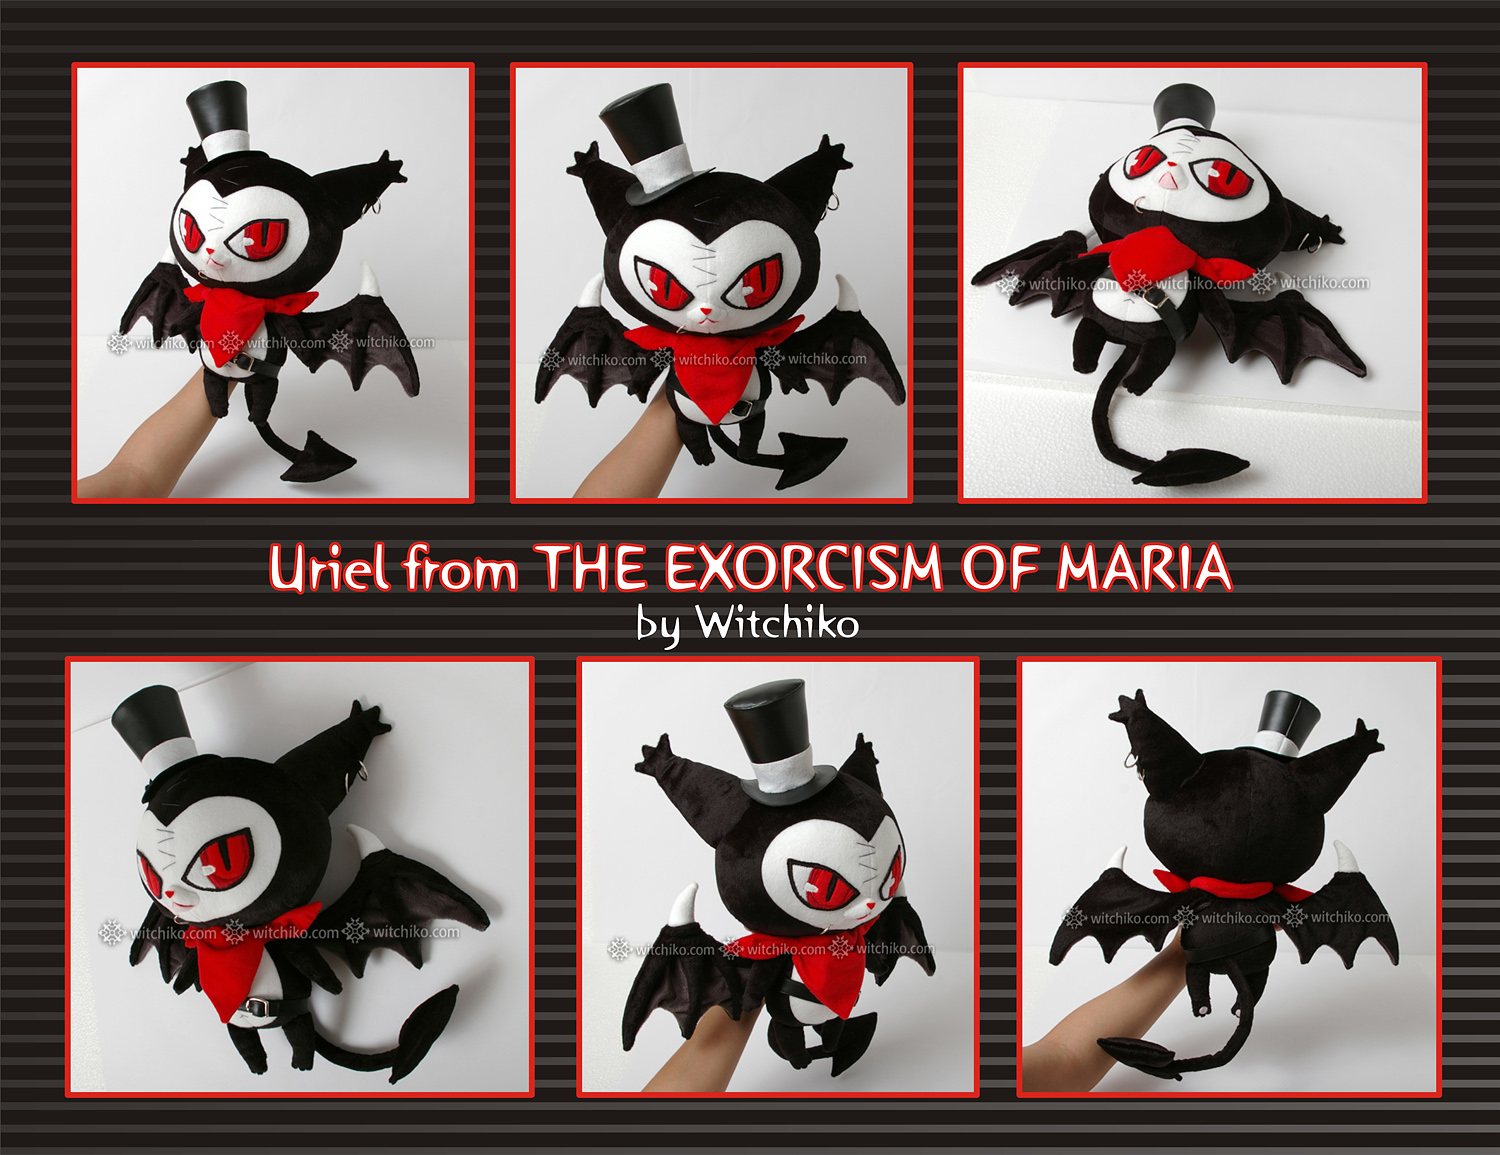 Uriel::::::THE EXORCISM OF MARIA by Witchiko